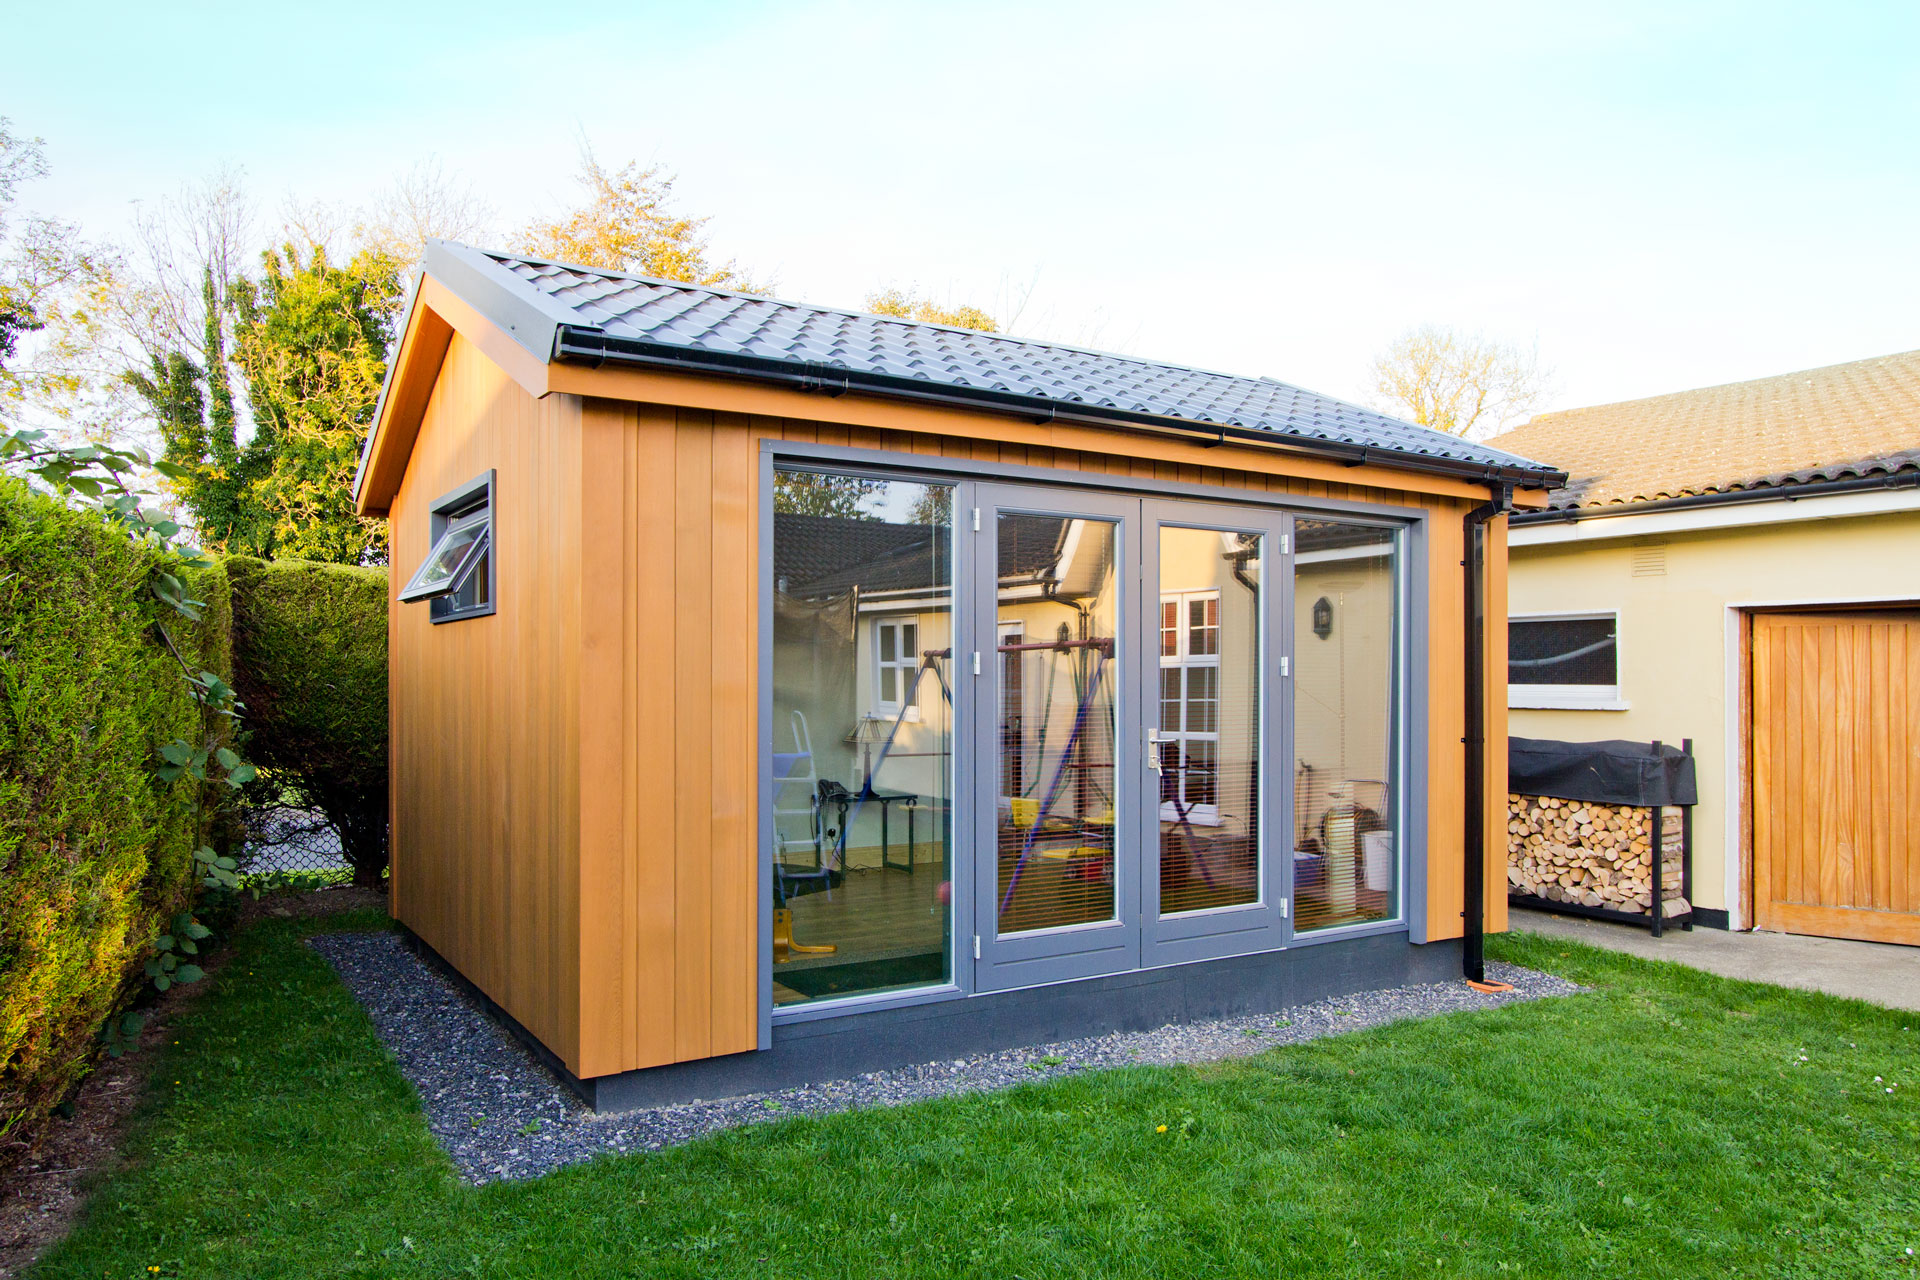 Garden Office Gallery on garden shed floor plans